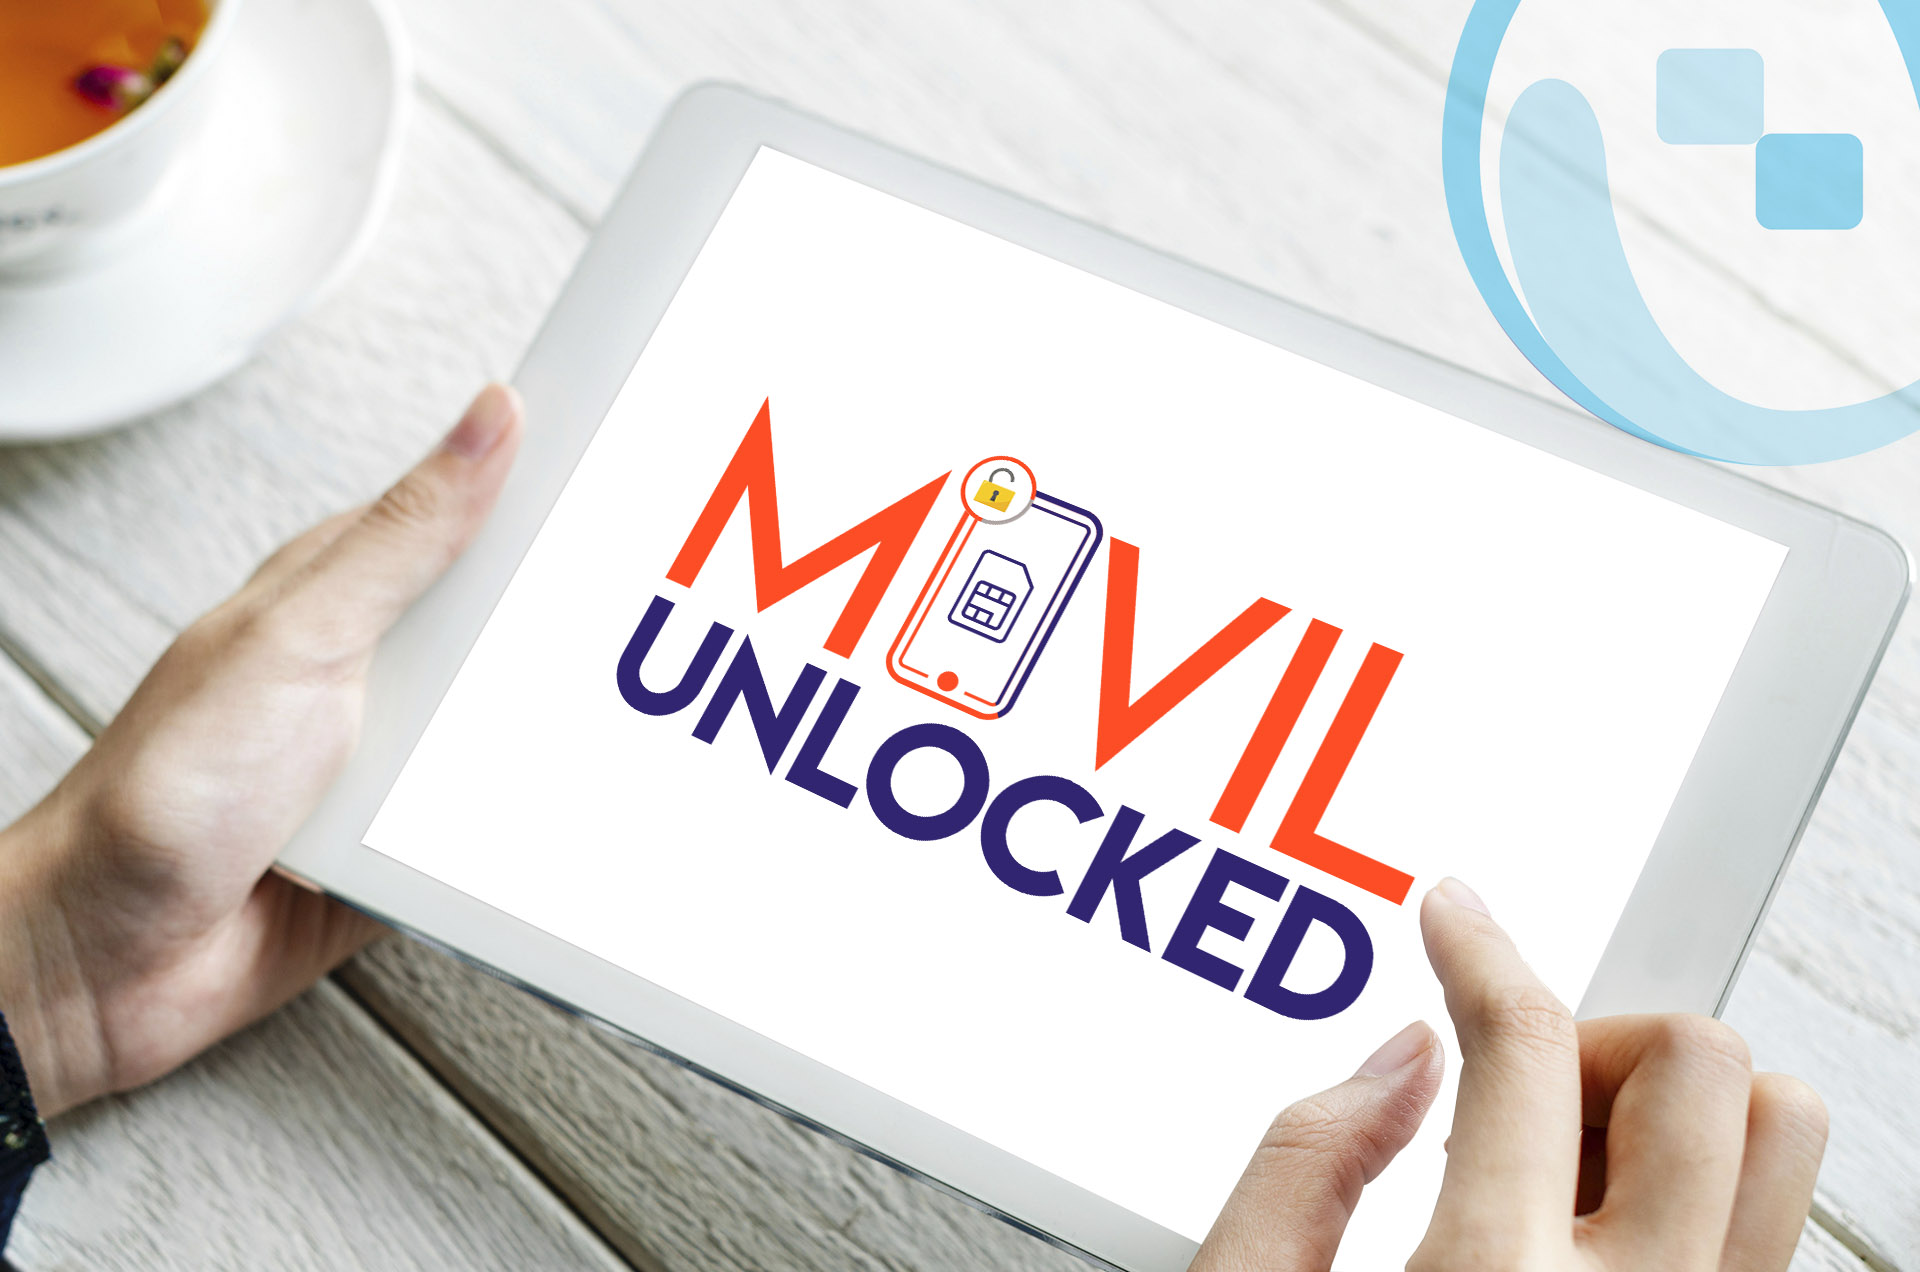 Portafolio logo-movil-unlocked